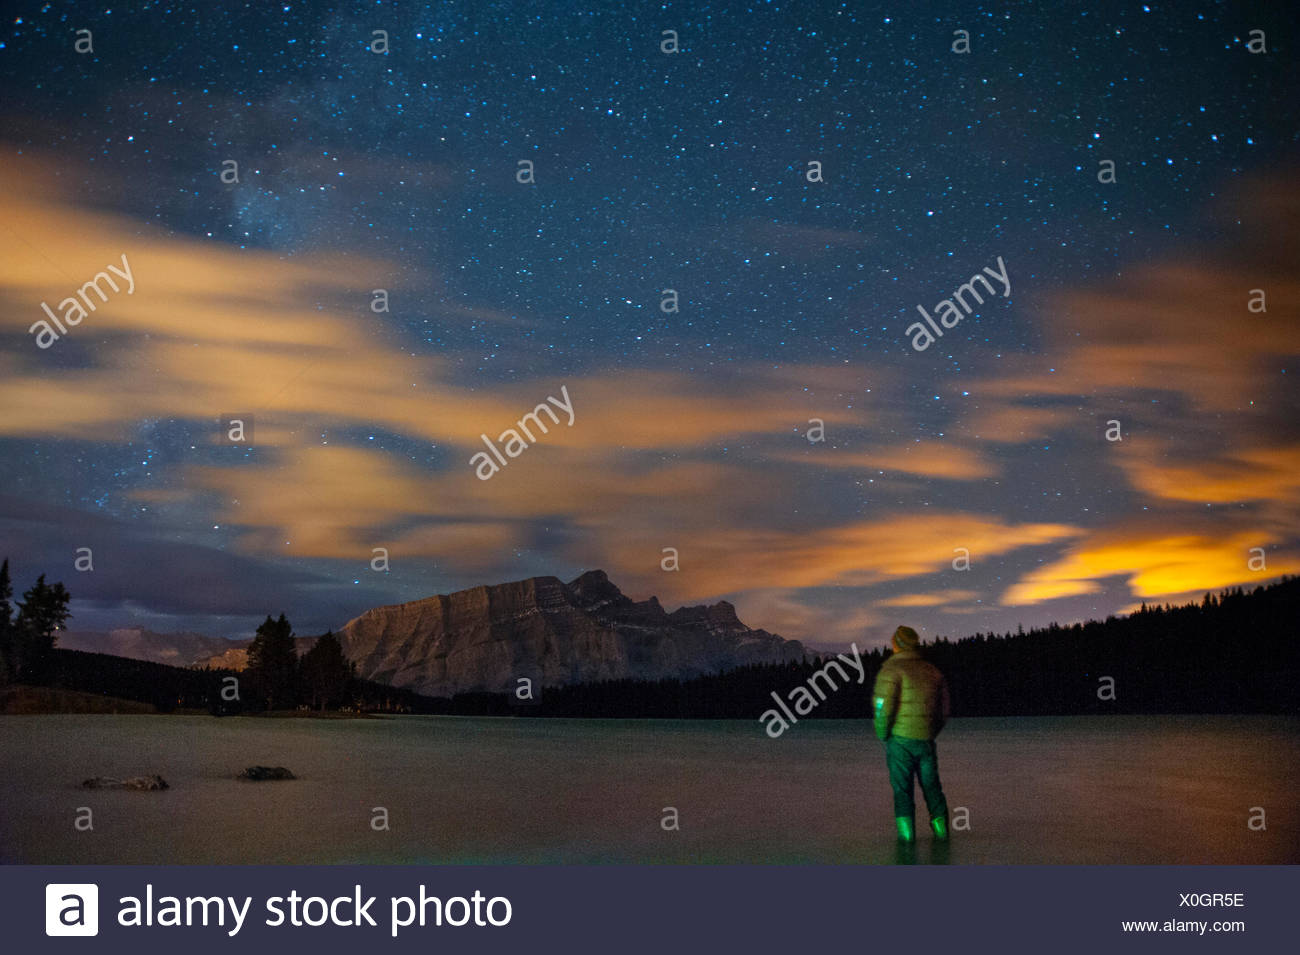 A camper watches he Milky Way soaring over Mount Rundle and Two Jack Lake. - Stock Image